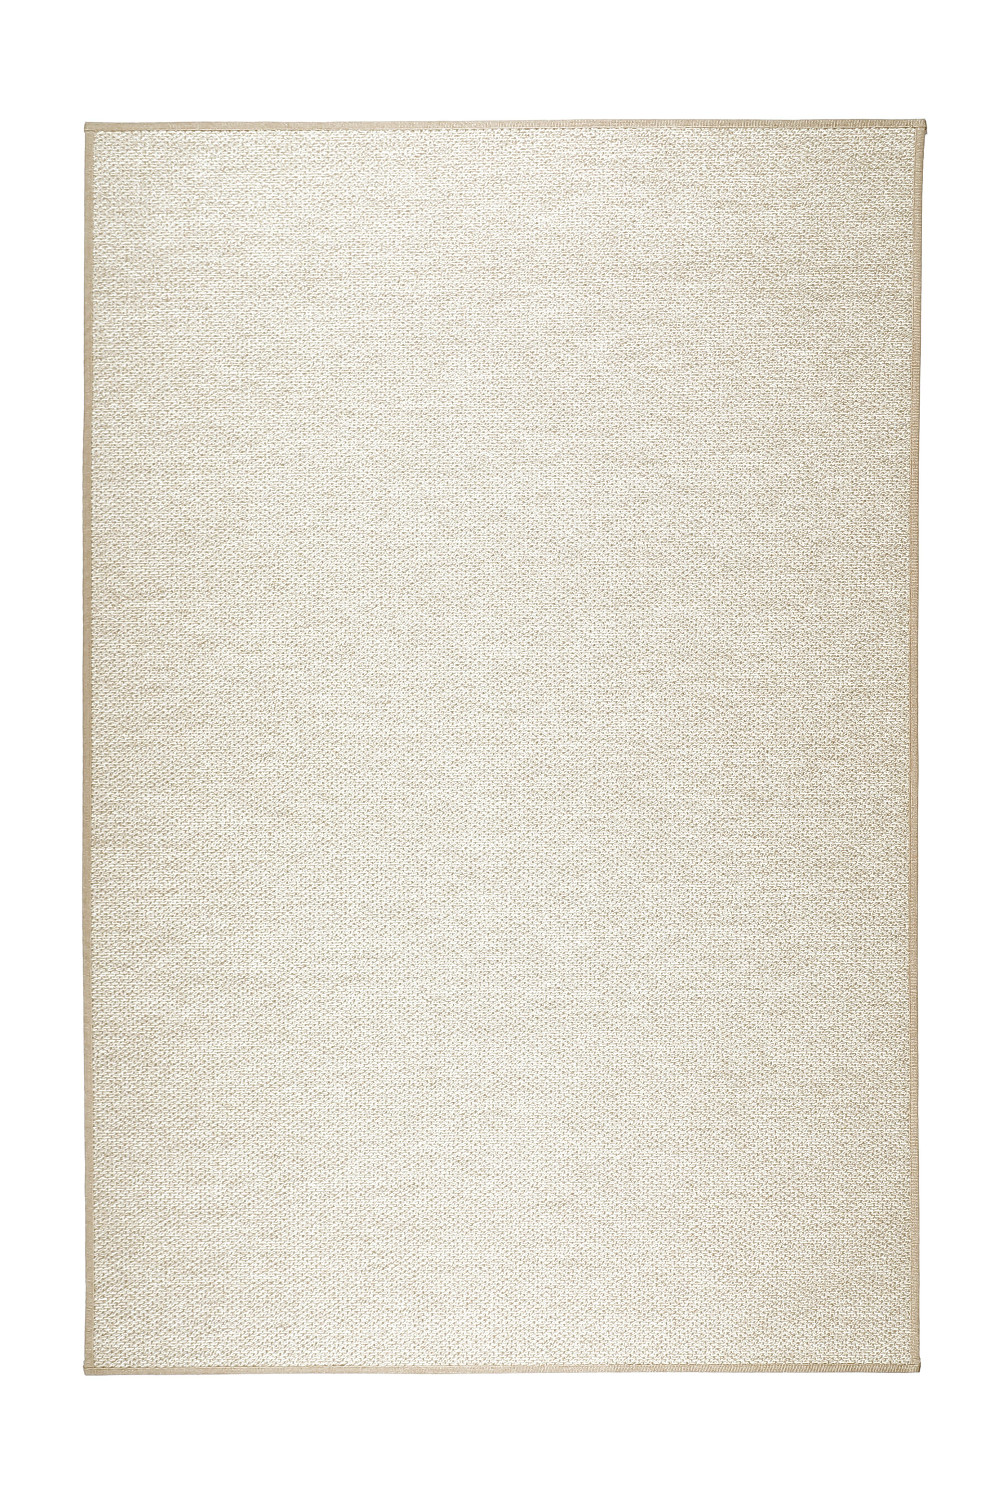 VM Carpet Aho matto 72 beige